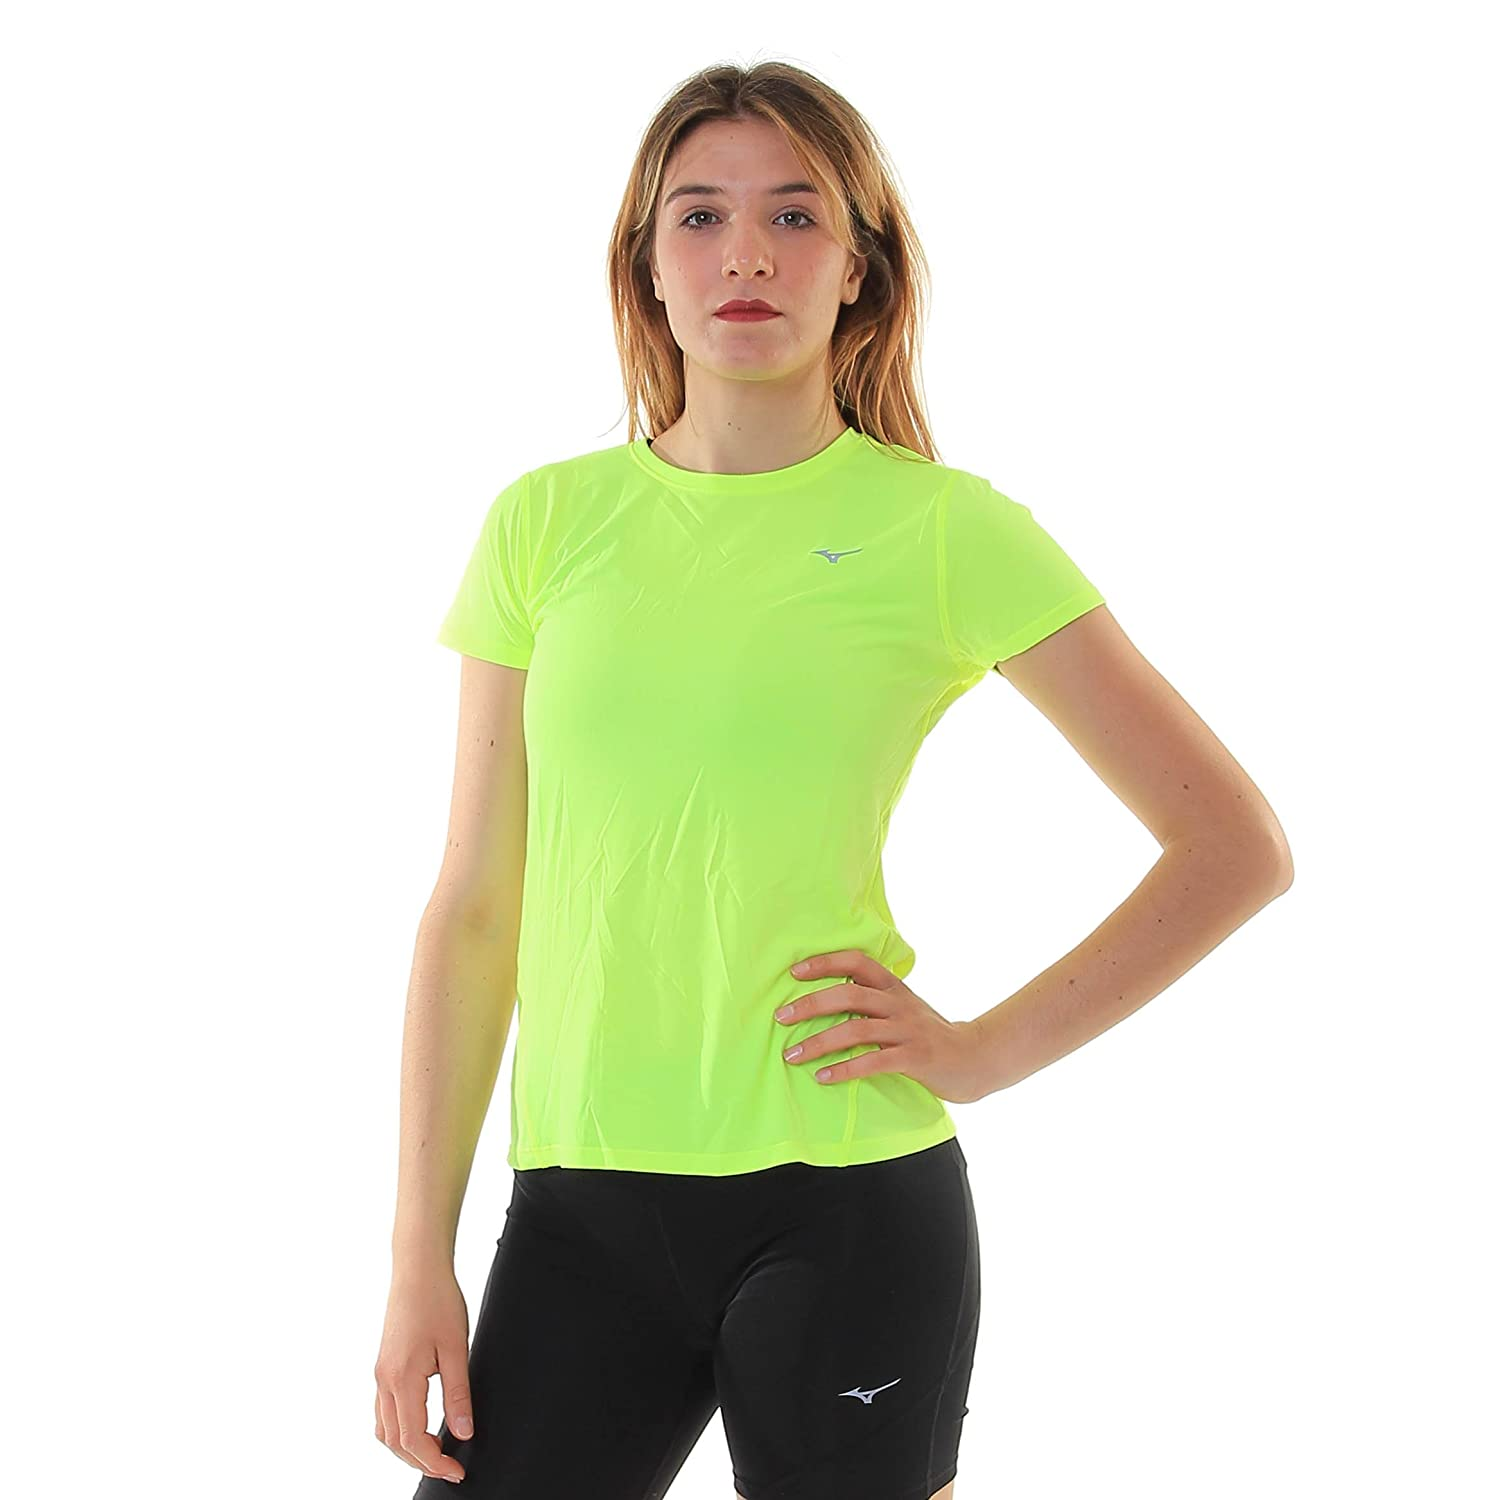 TALLA L EU. Mizuno Women's Impulse Core T-Shirt - AW17